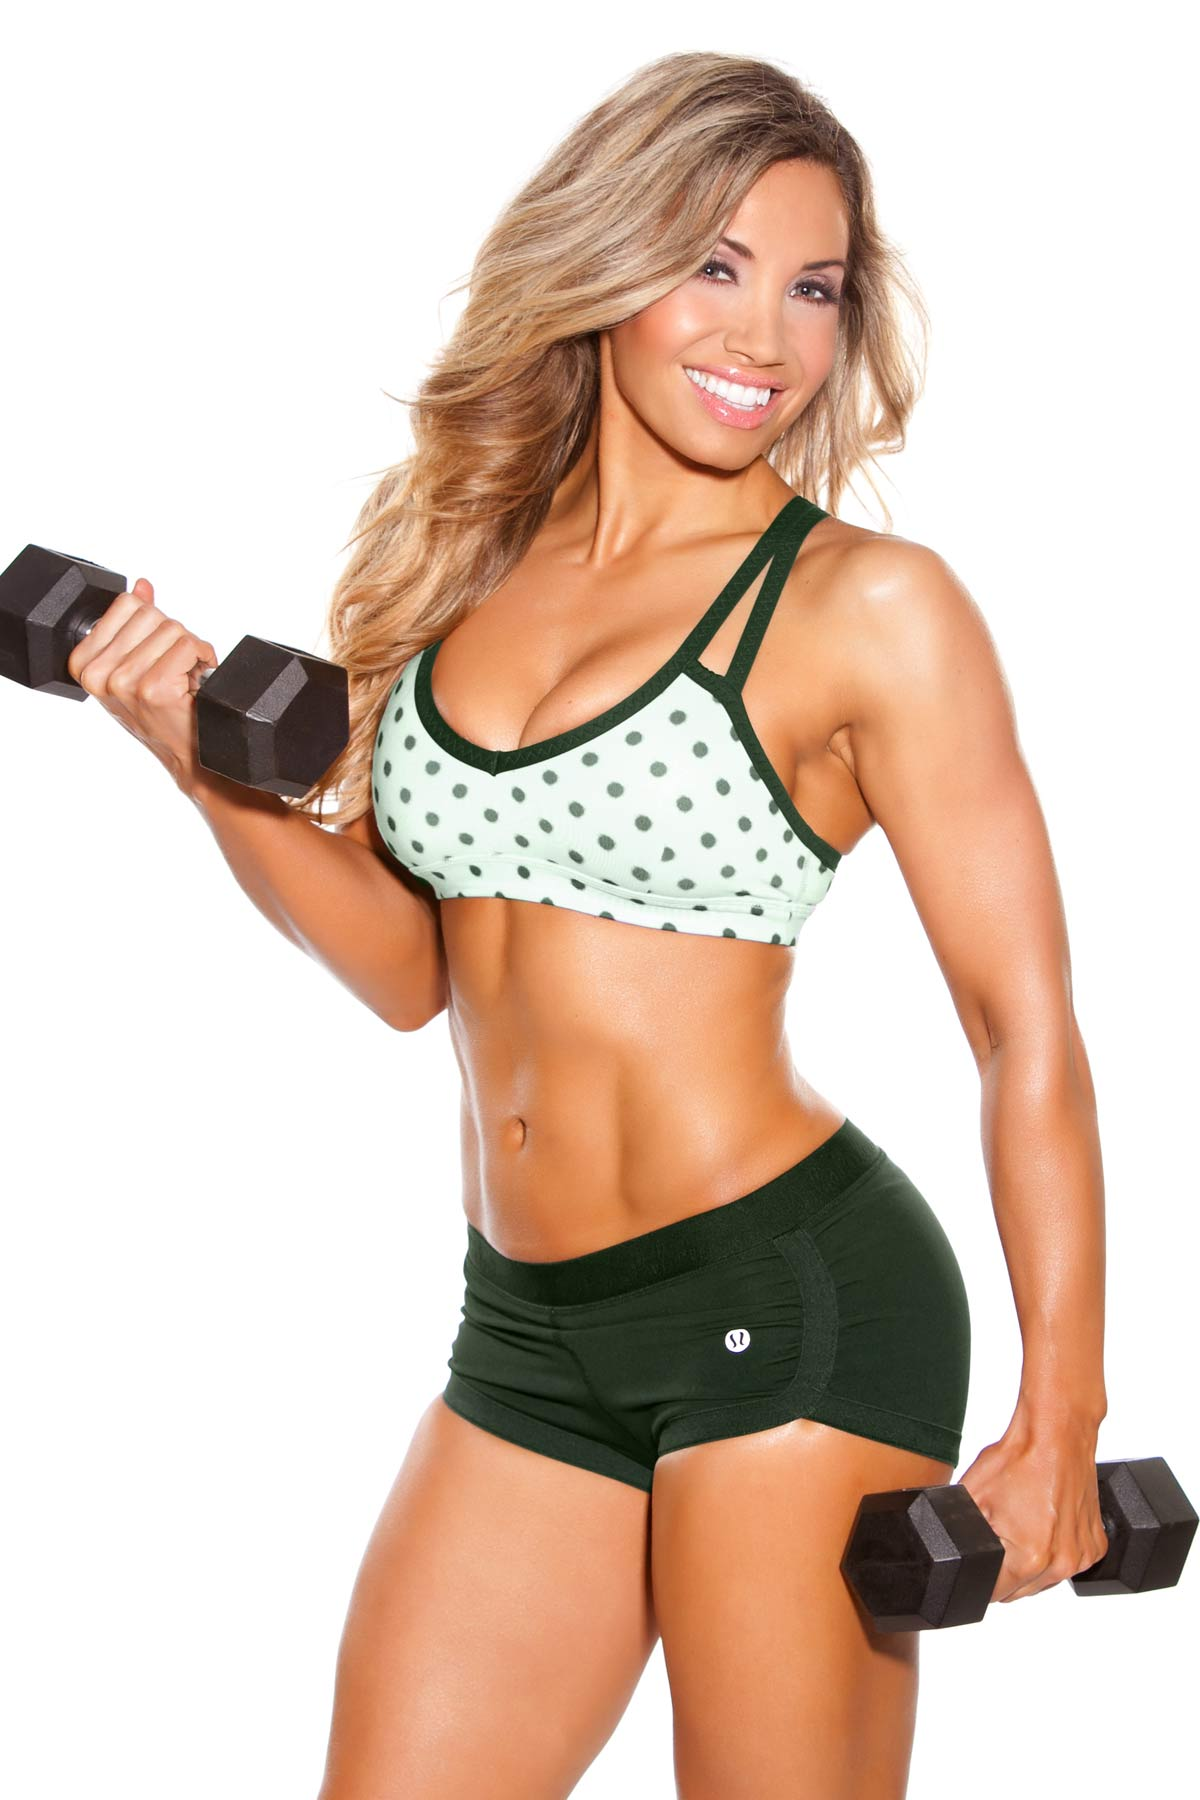 lyzabeth-lopez-hourglass-workout,